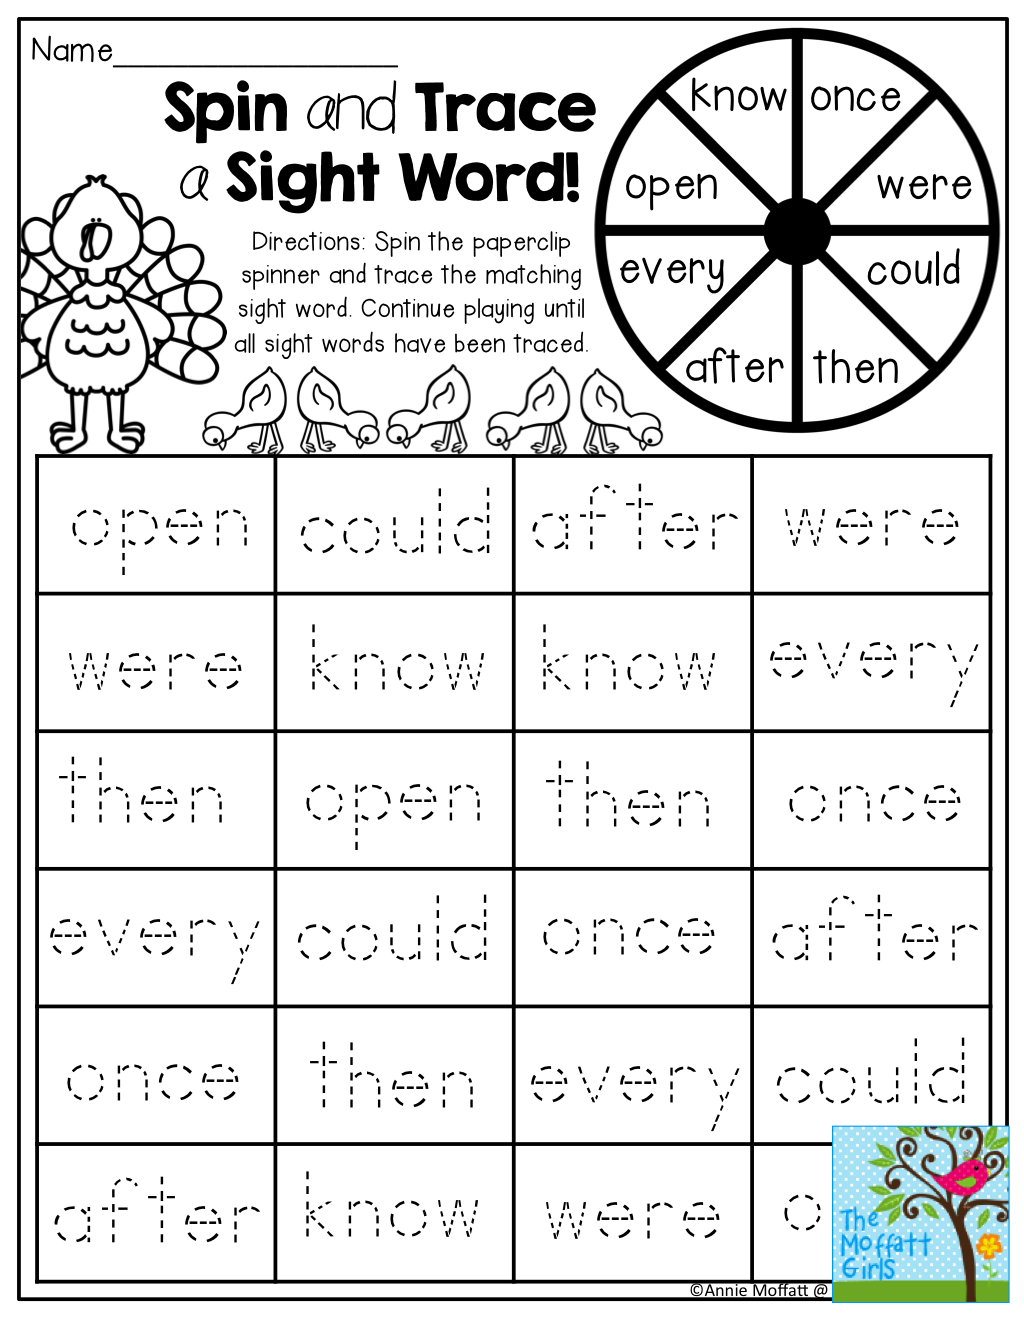 Spin And Trace A Sight Word Tons Of Fun And Interactive Printables